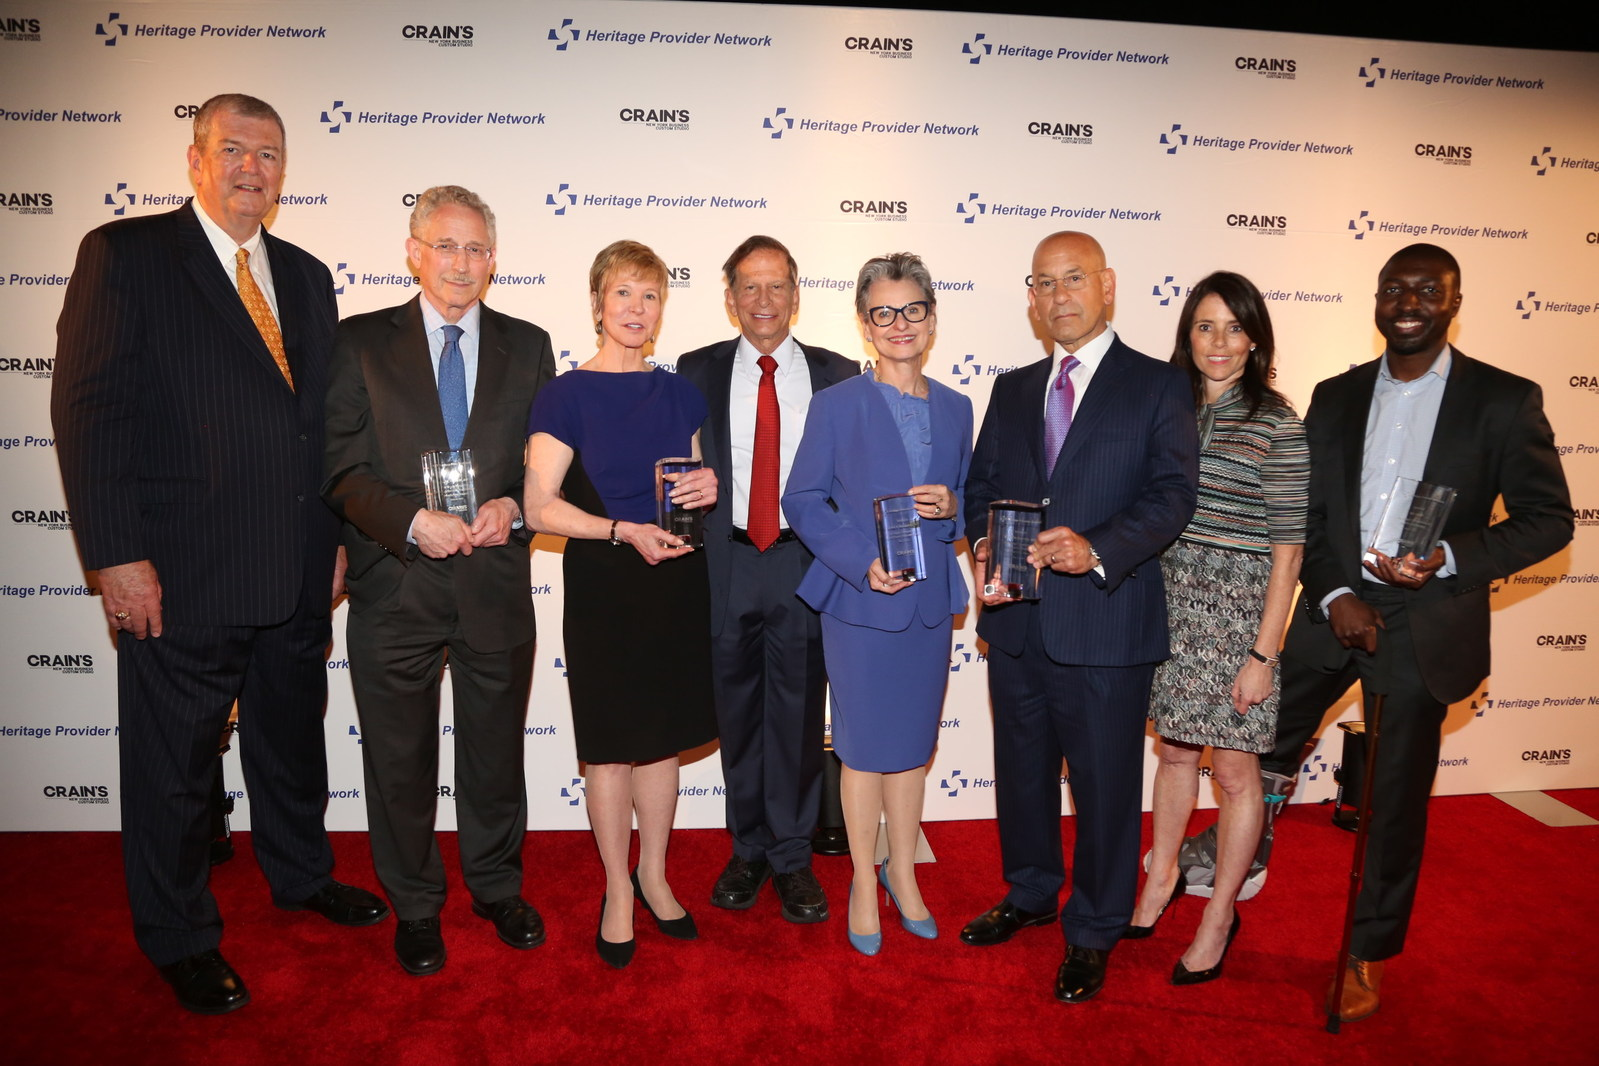 Winners HPN Crain's 2017 Heritage. Healthcare Innovation Awards. From left to right: Mark Wagar, HPN, Dr. Carl Nathan, Karen Ignagni, Dr. Richard Merkin, HPN, Dr. Nora V. Bergasa, Dr. Steven Safyer, Jill Kaplan, Crain's NY Business, Gil Addo